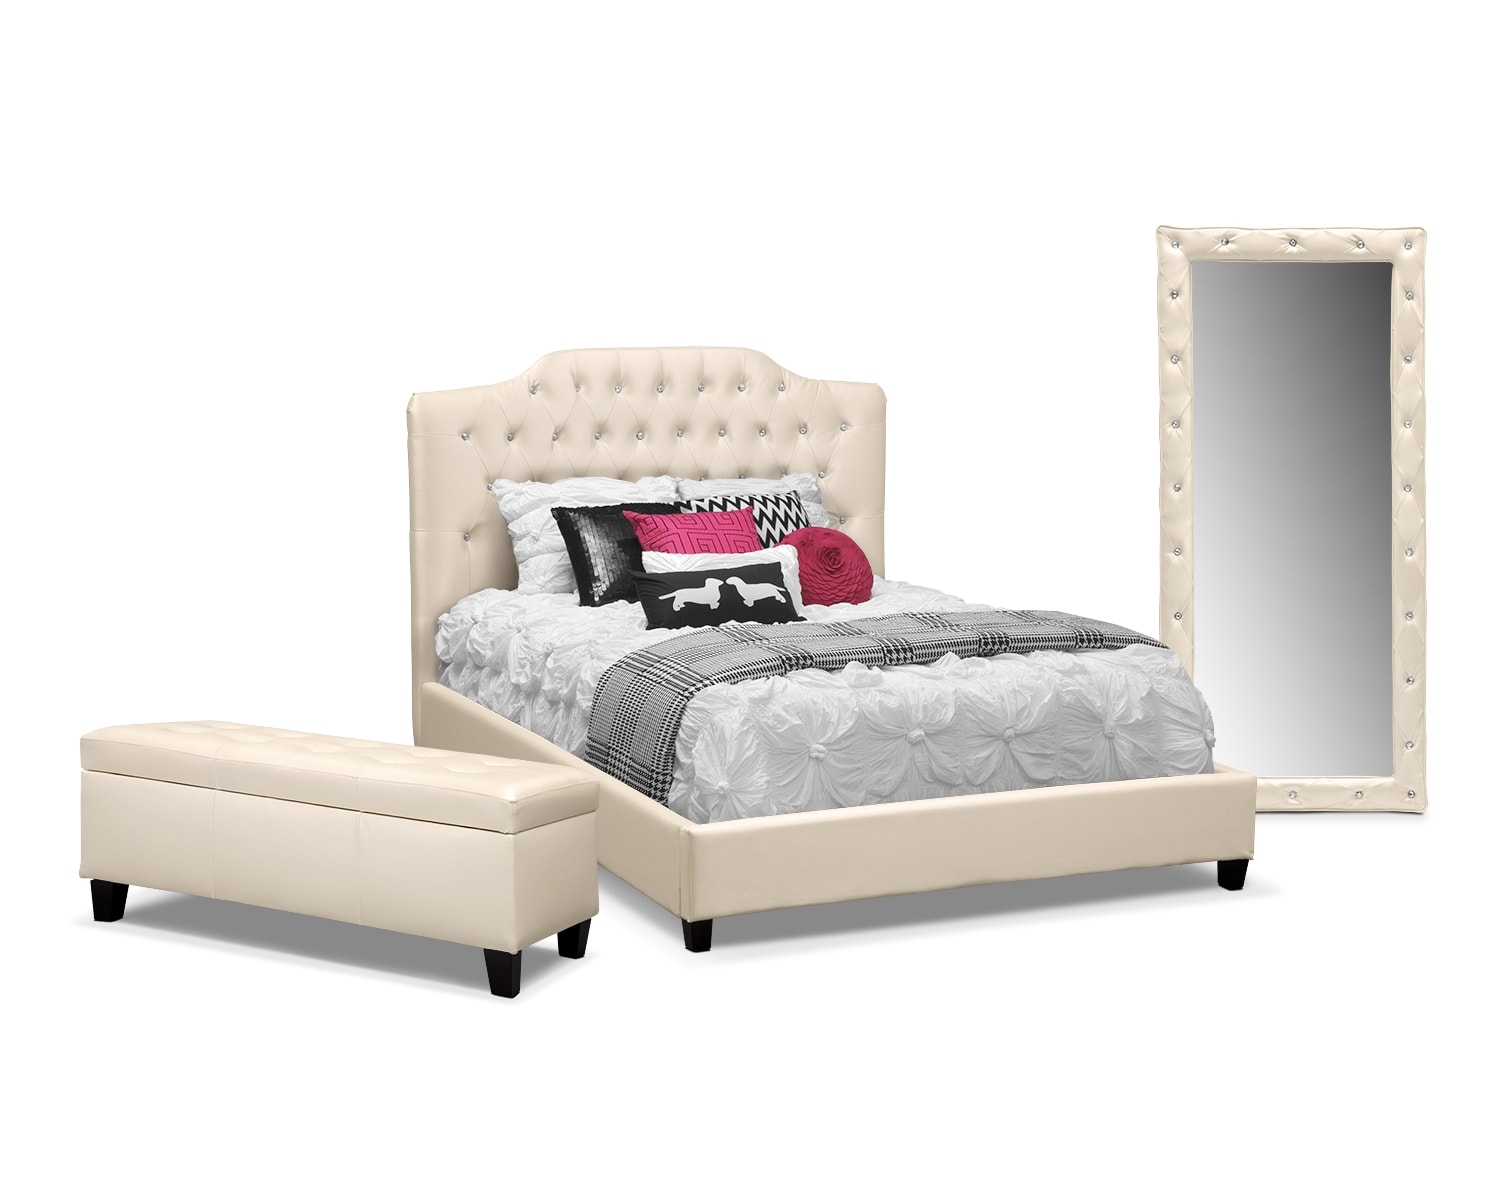 The Valerie Pearl Bedroom Collection